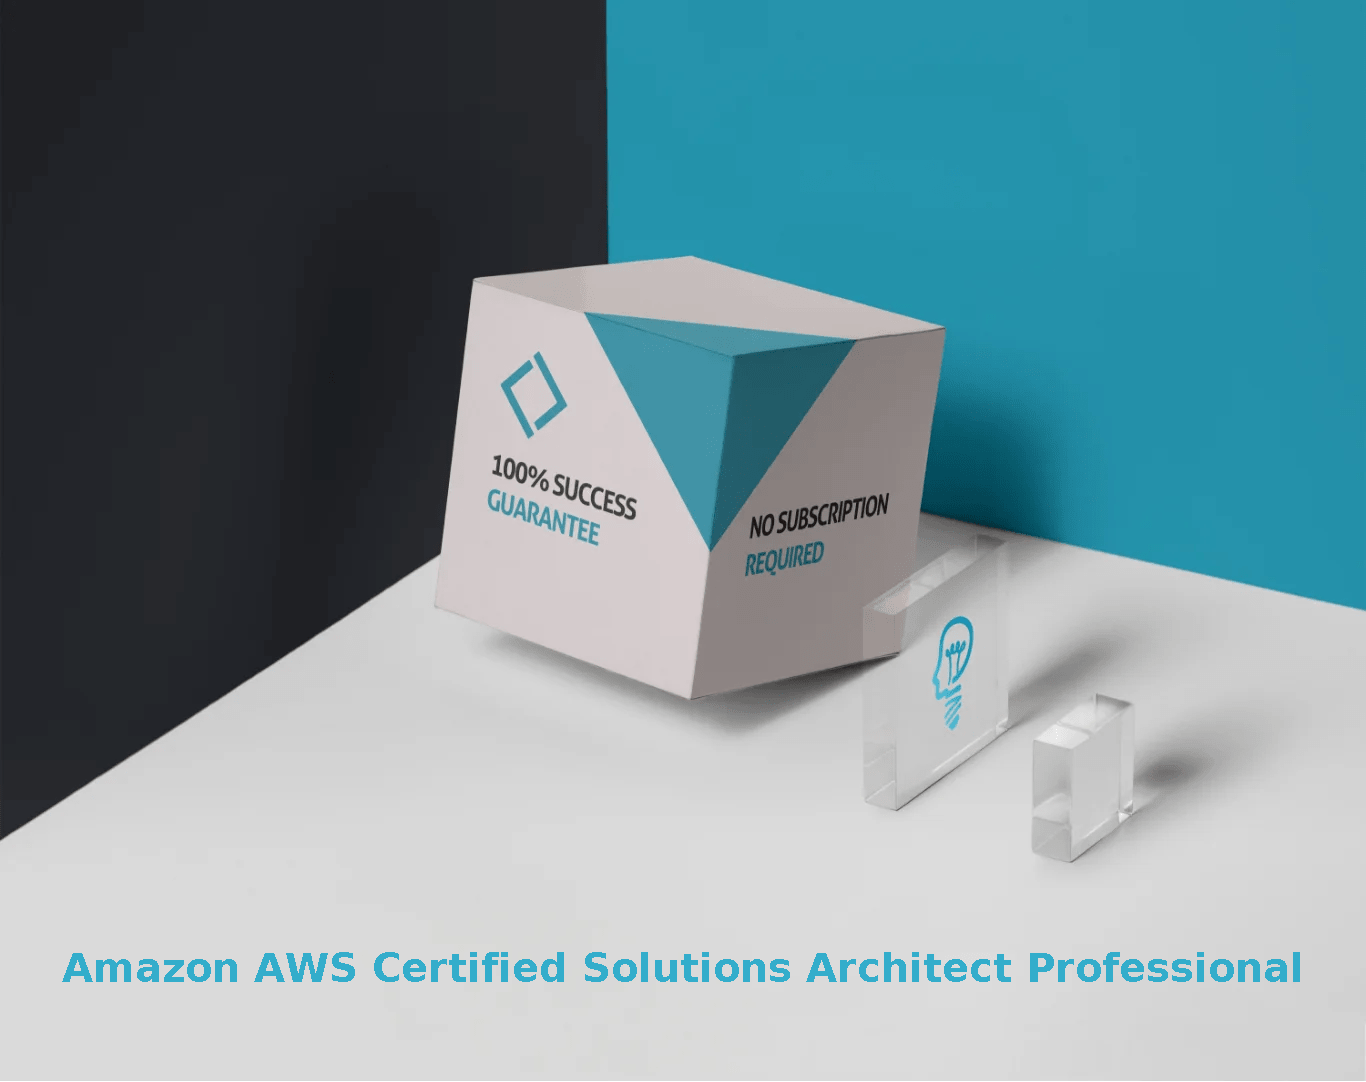 Amazon AWS Certified Solutions Architect Professional Exams